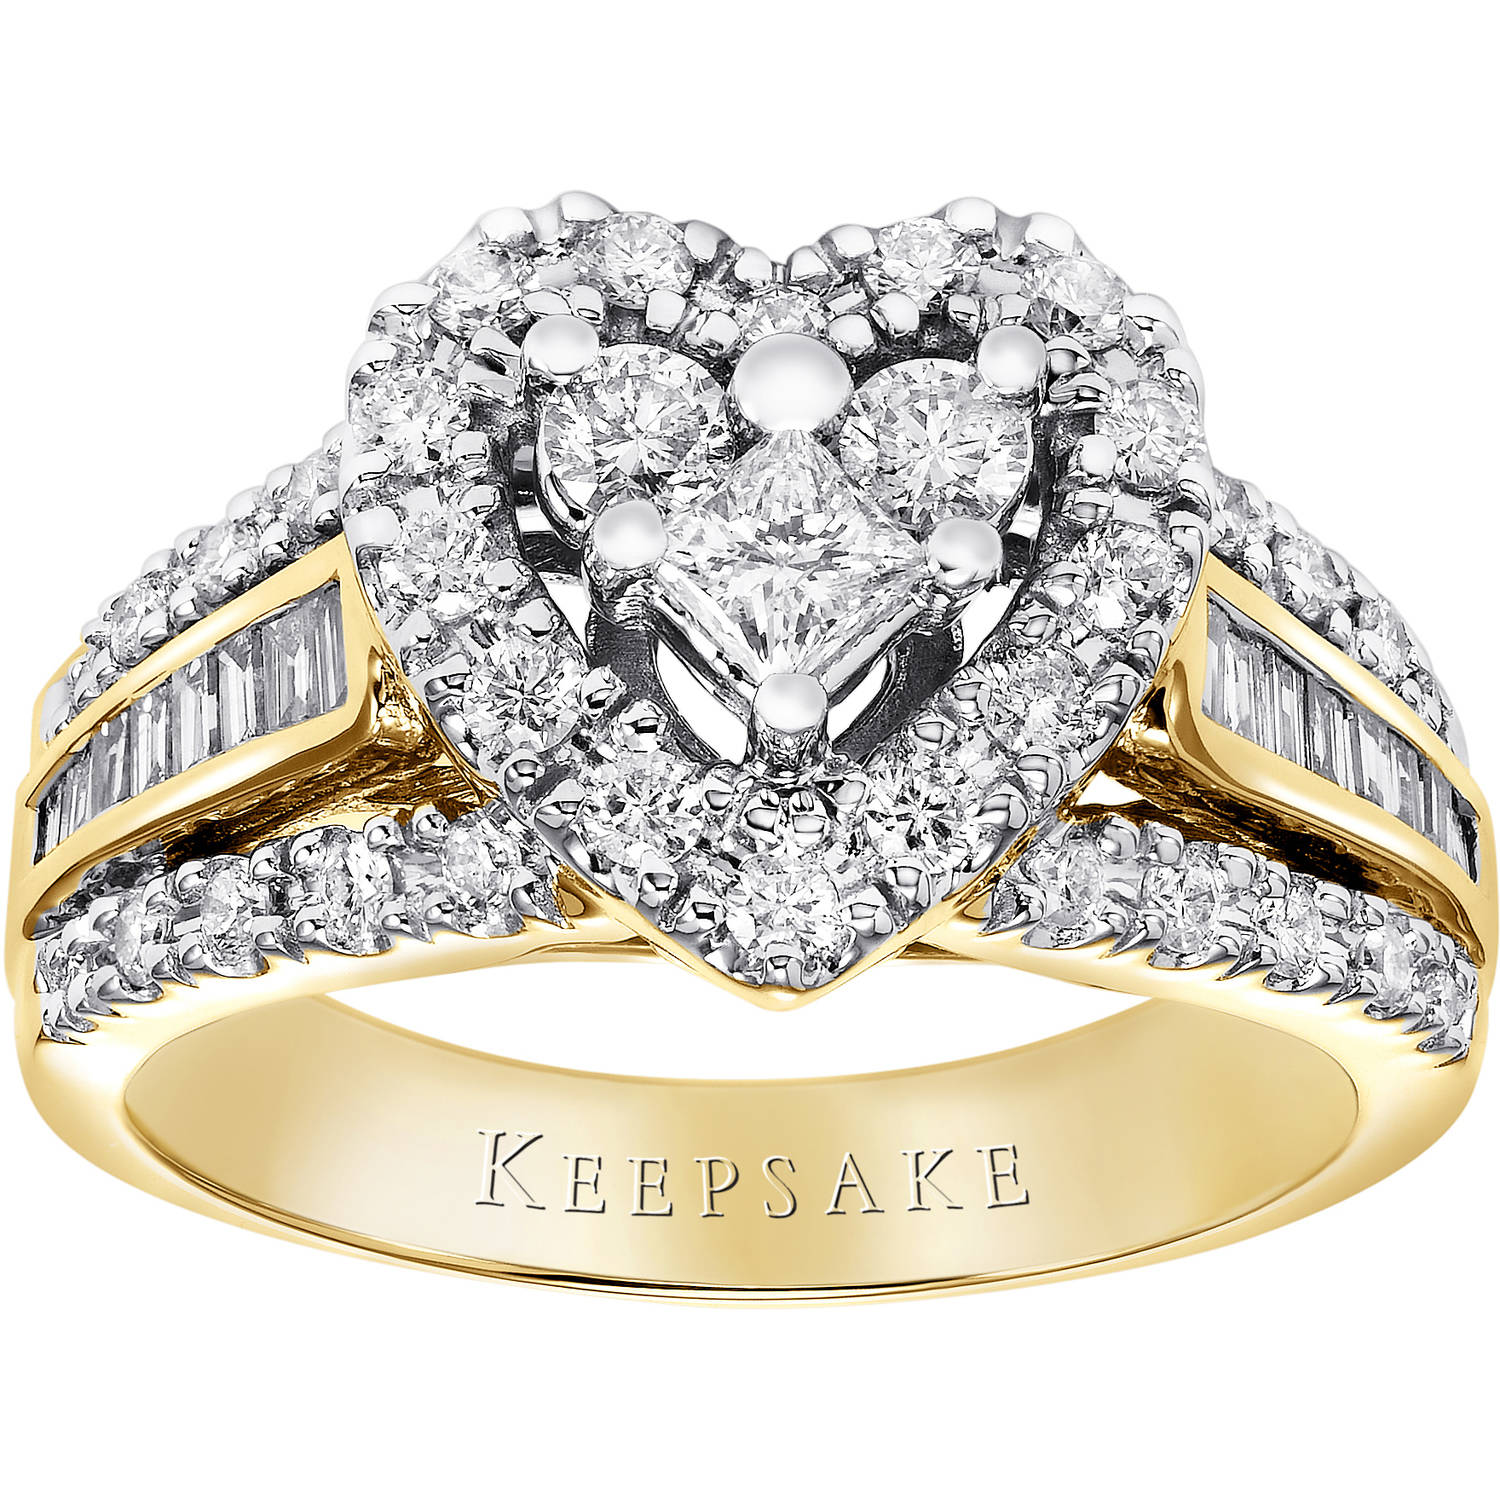 Keepsake Corazon 1.00 Carat T.W. Diamond 10kt Yellow Gold Ring by Frederick Goldman